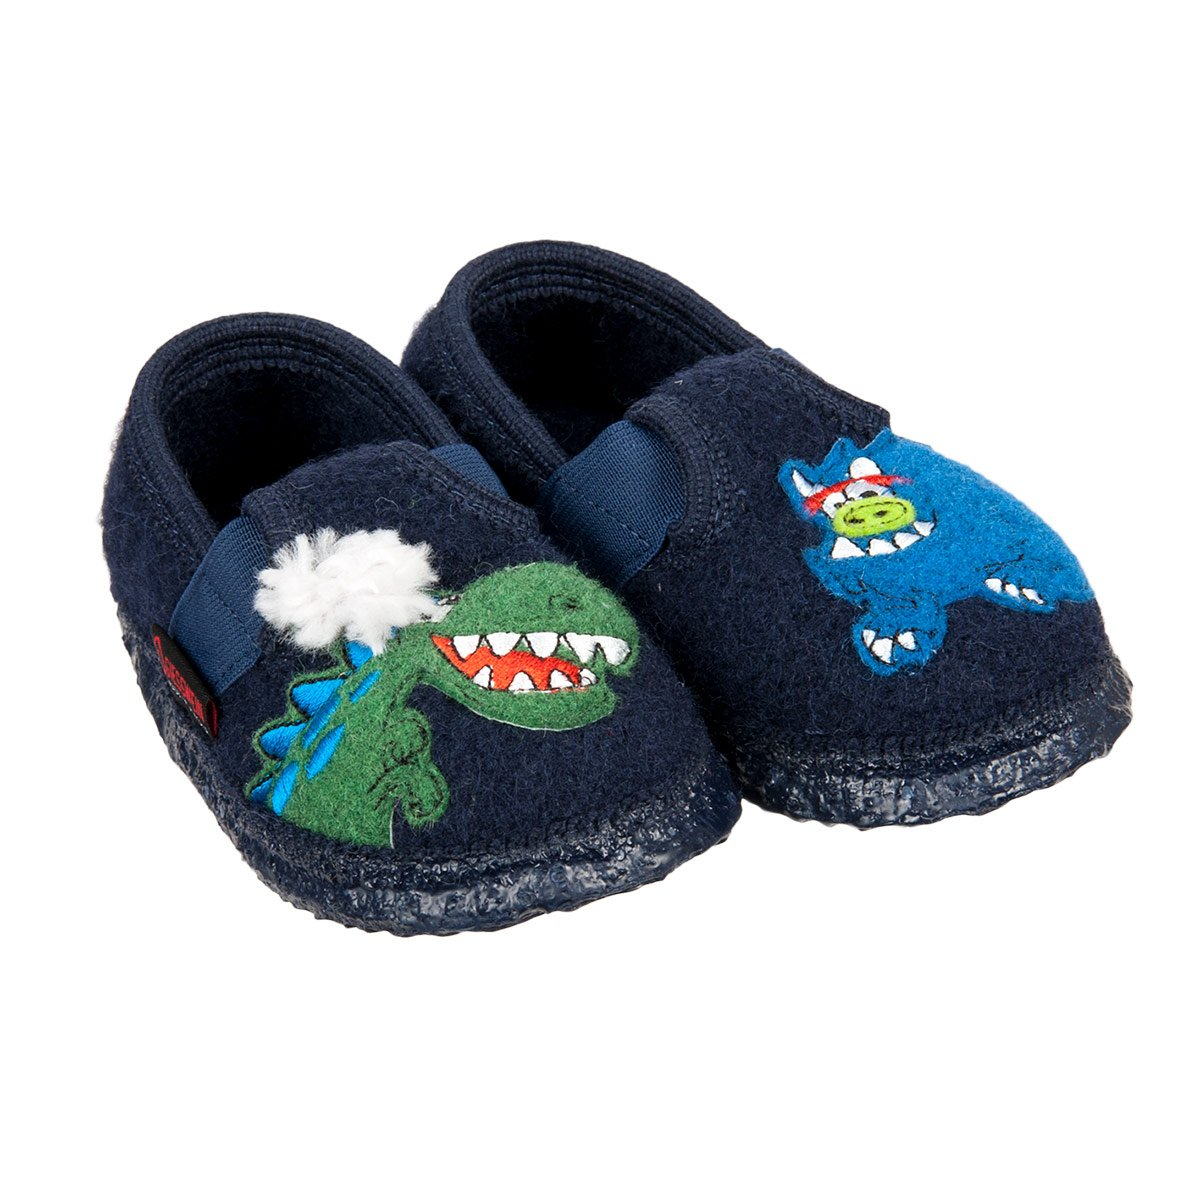 Giesswein Boy S Slippers Tylsen With Dragon And Monster Motive